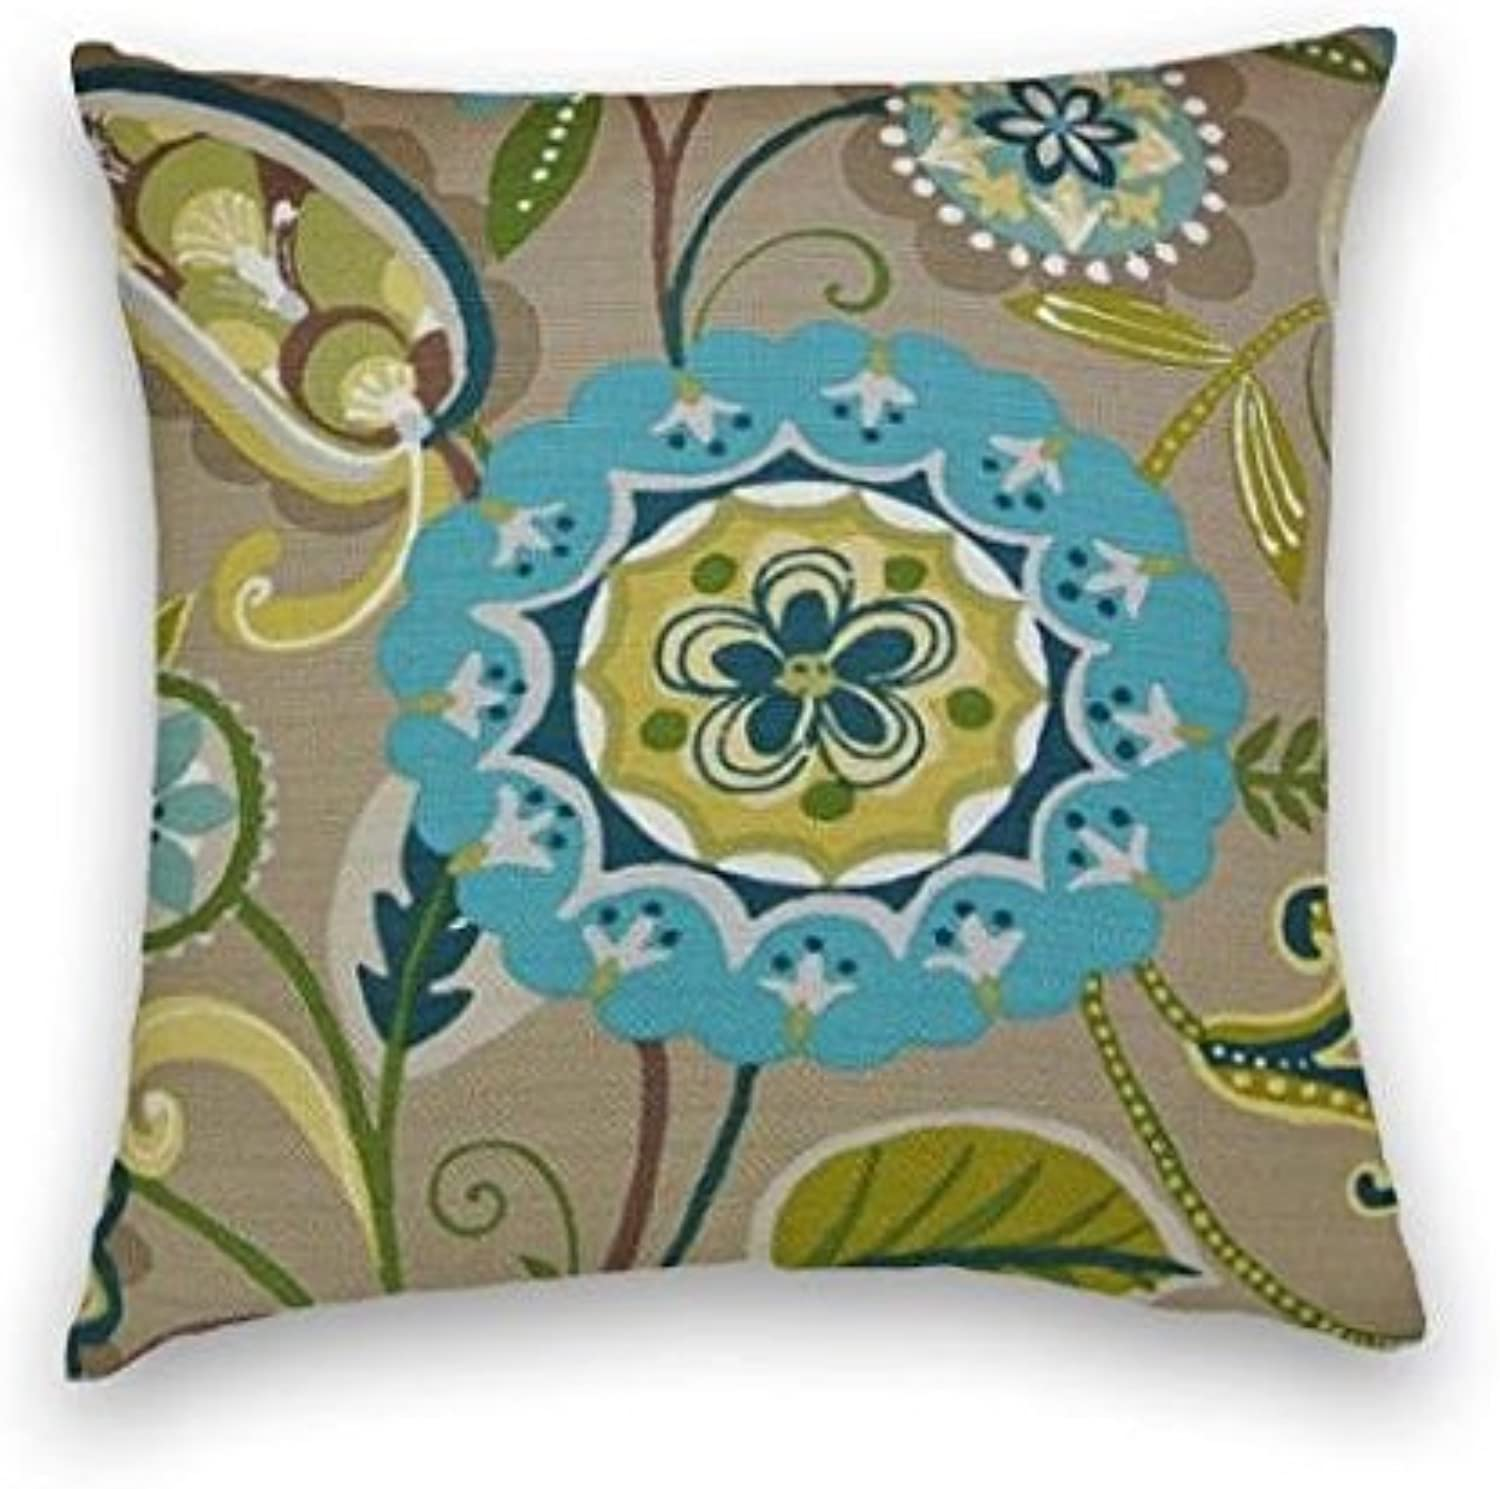 Green blueee Brown Cotton Floral Decorative Throw Pillow Cover